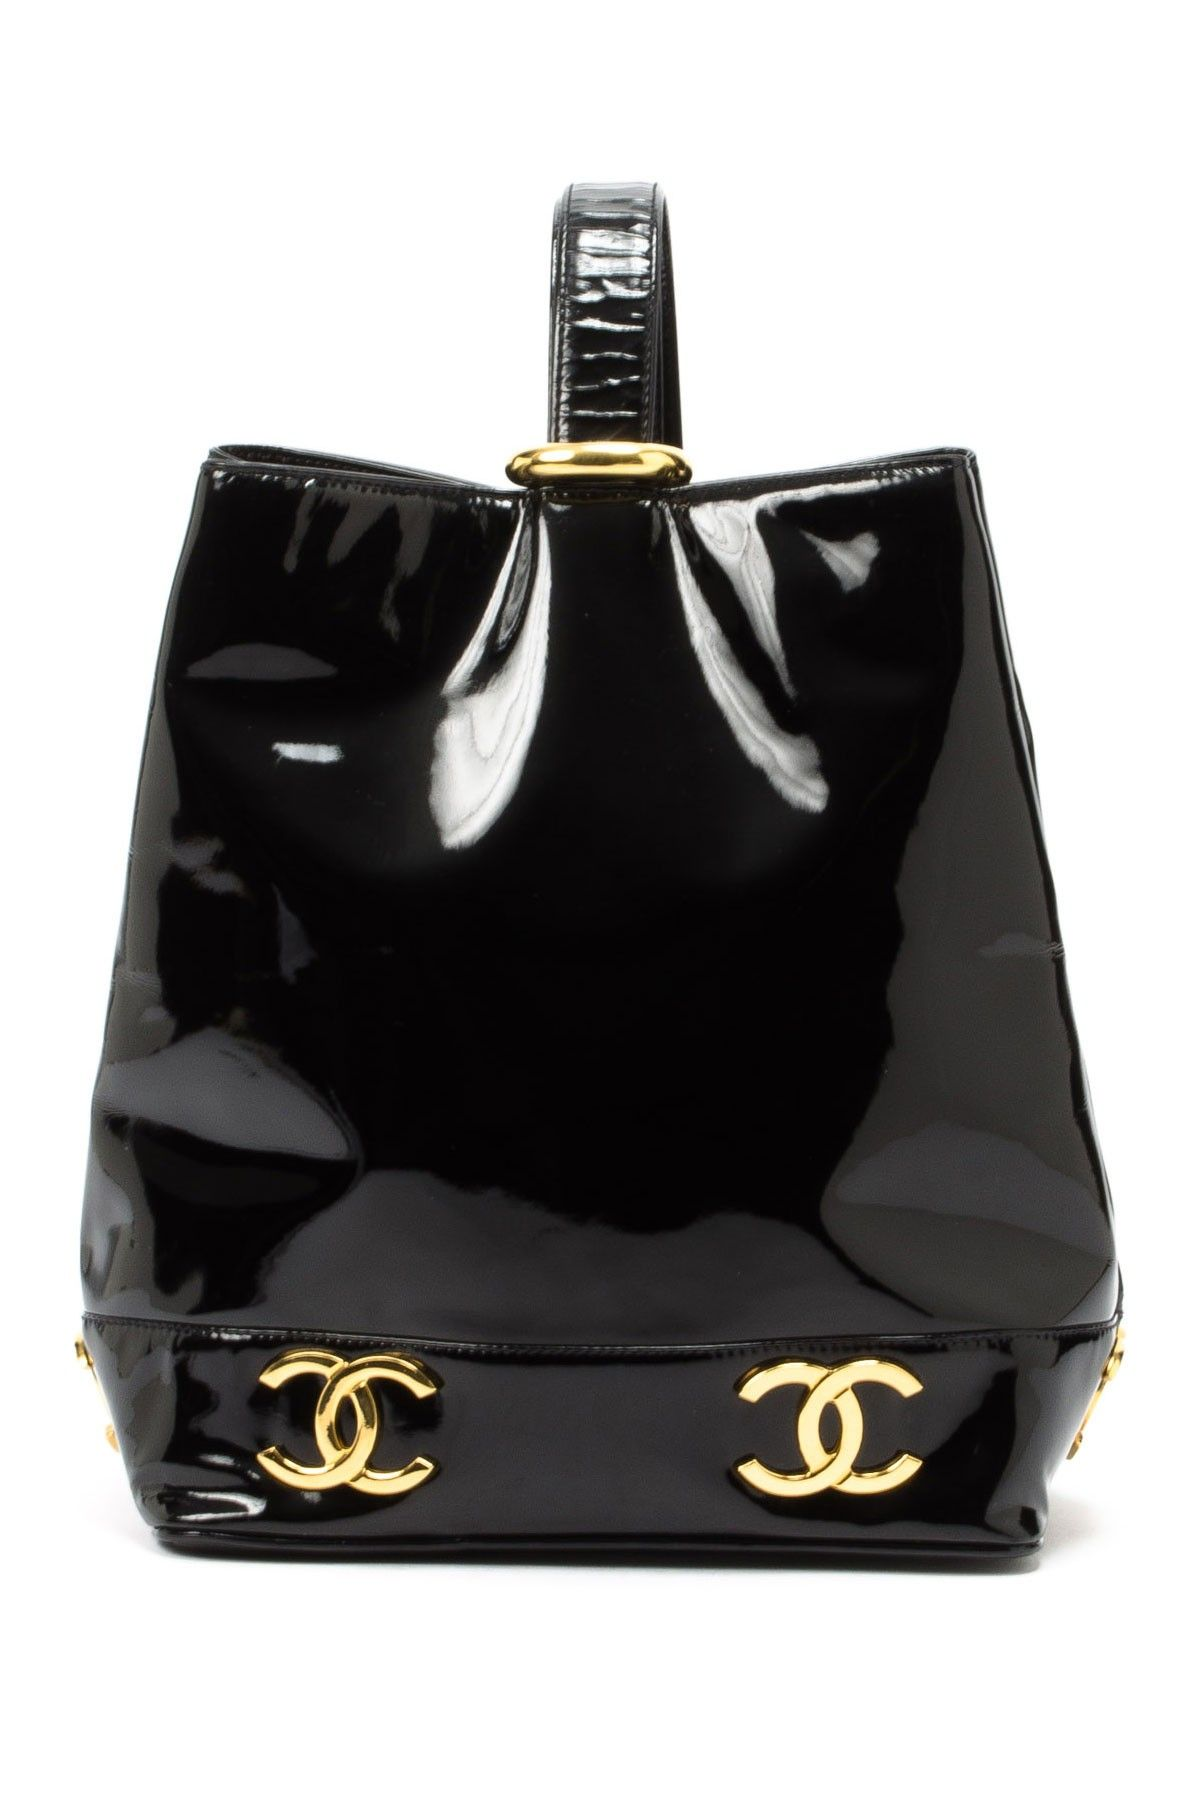 98da63b6db8 Chanel Patent Leather Bag with golden finish .. Winter wonder!